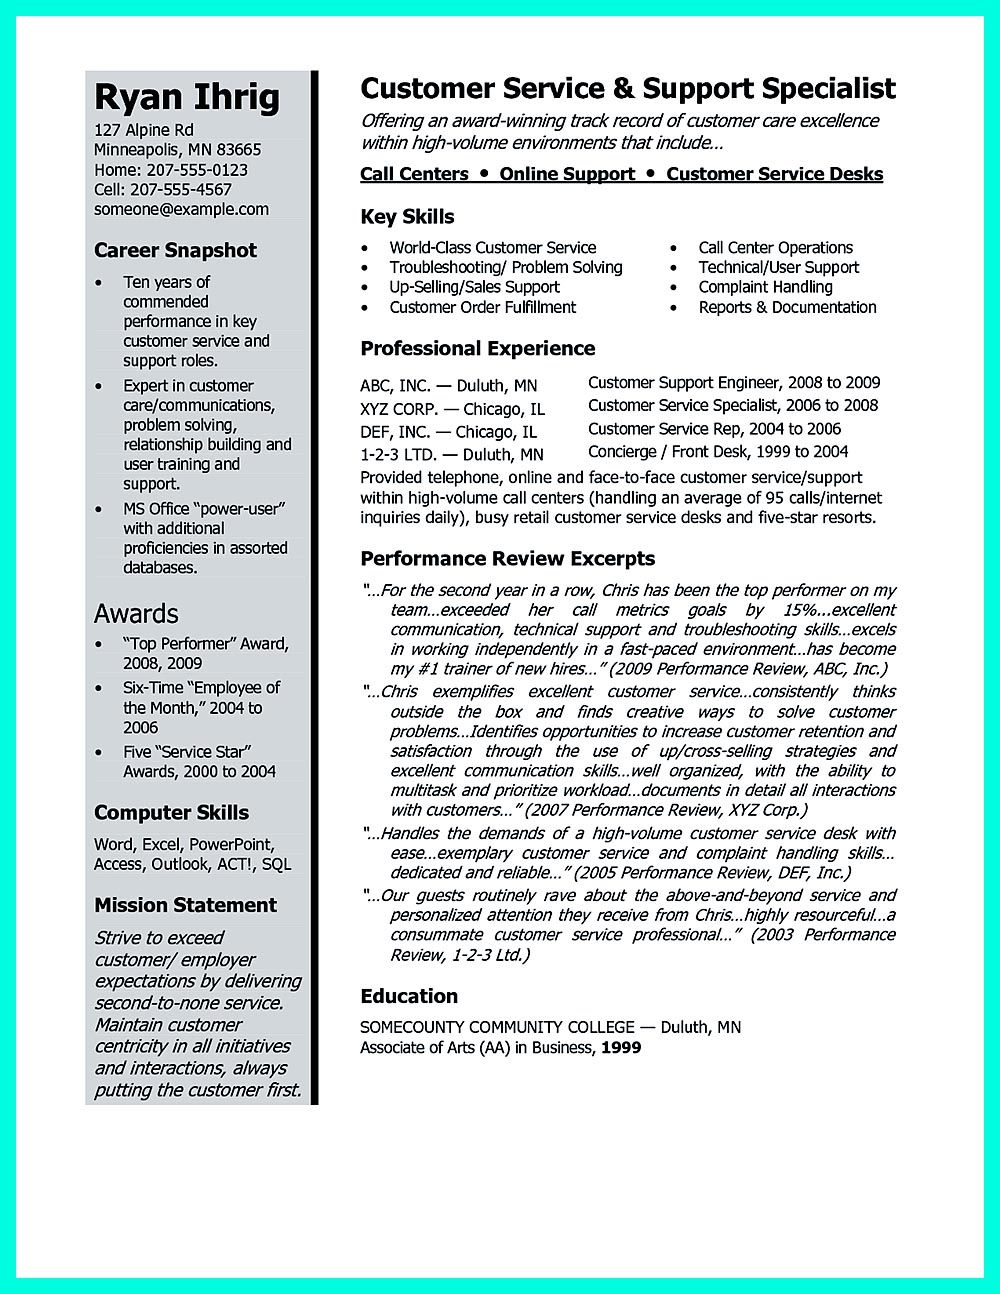 csr resume or customer service representative resume  include the job aspects where it showcase